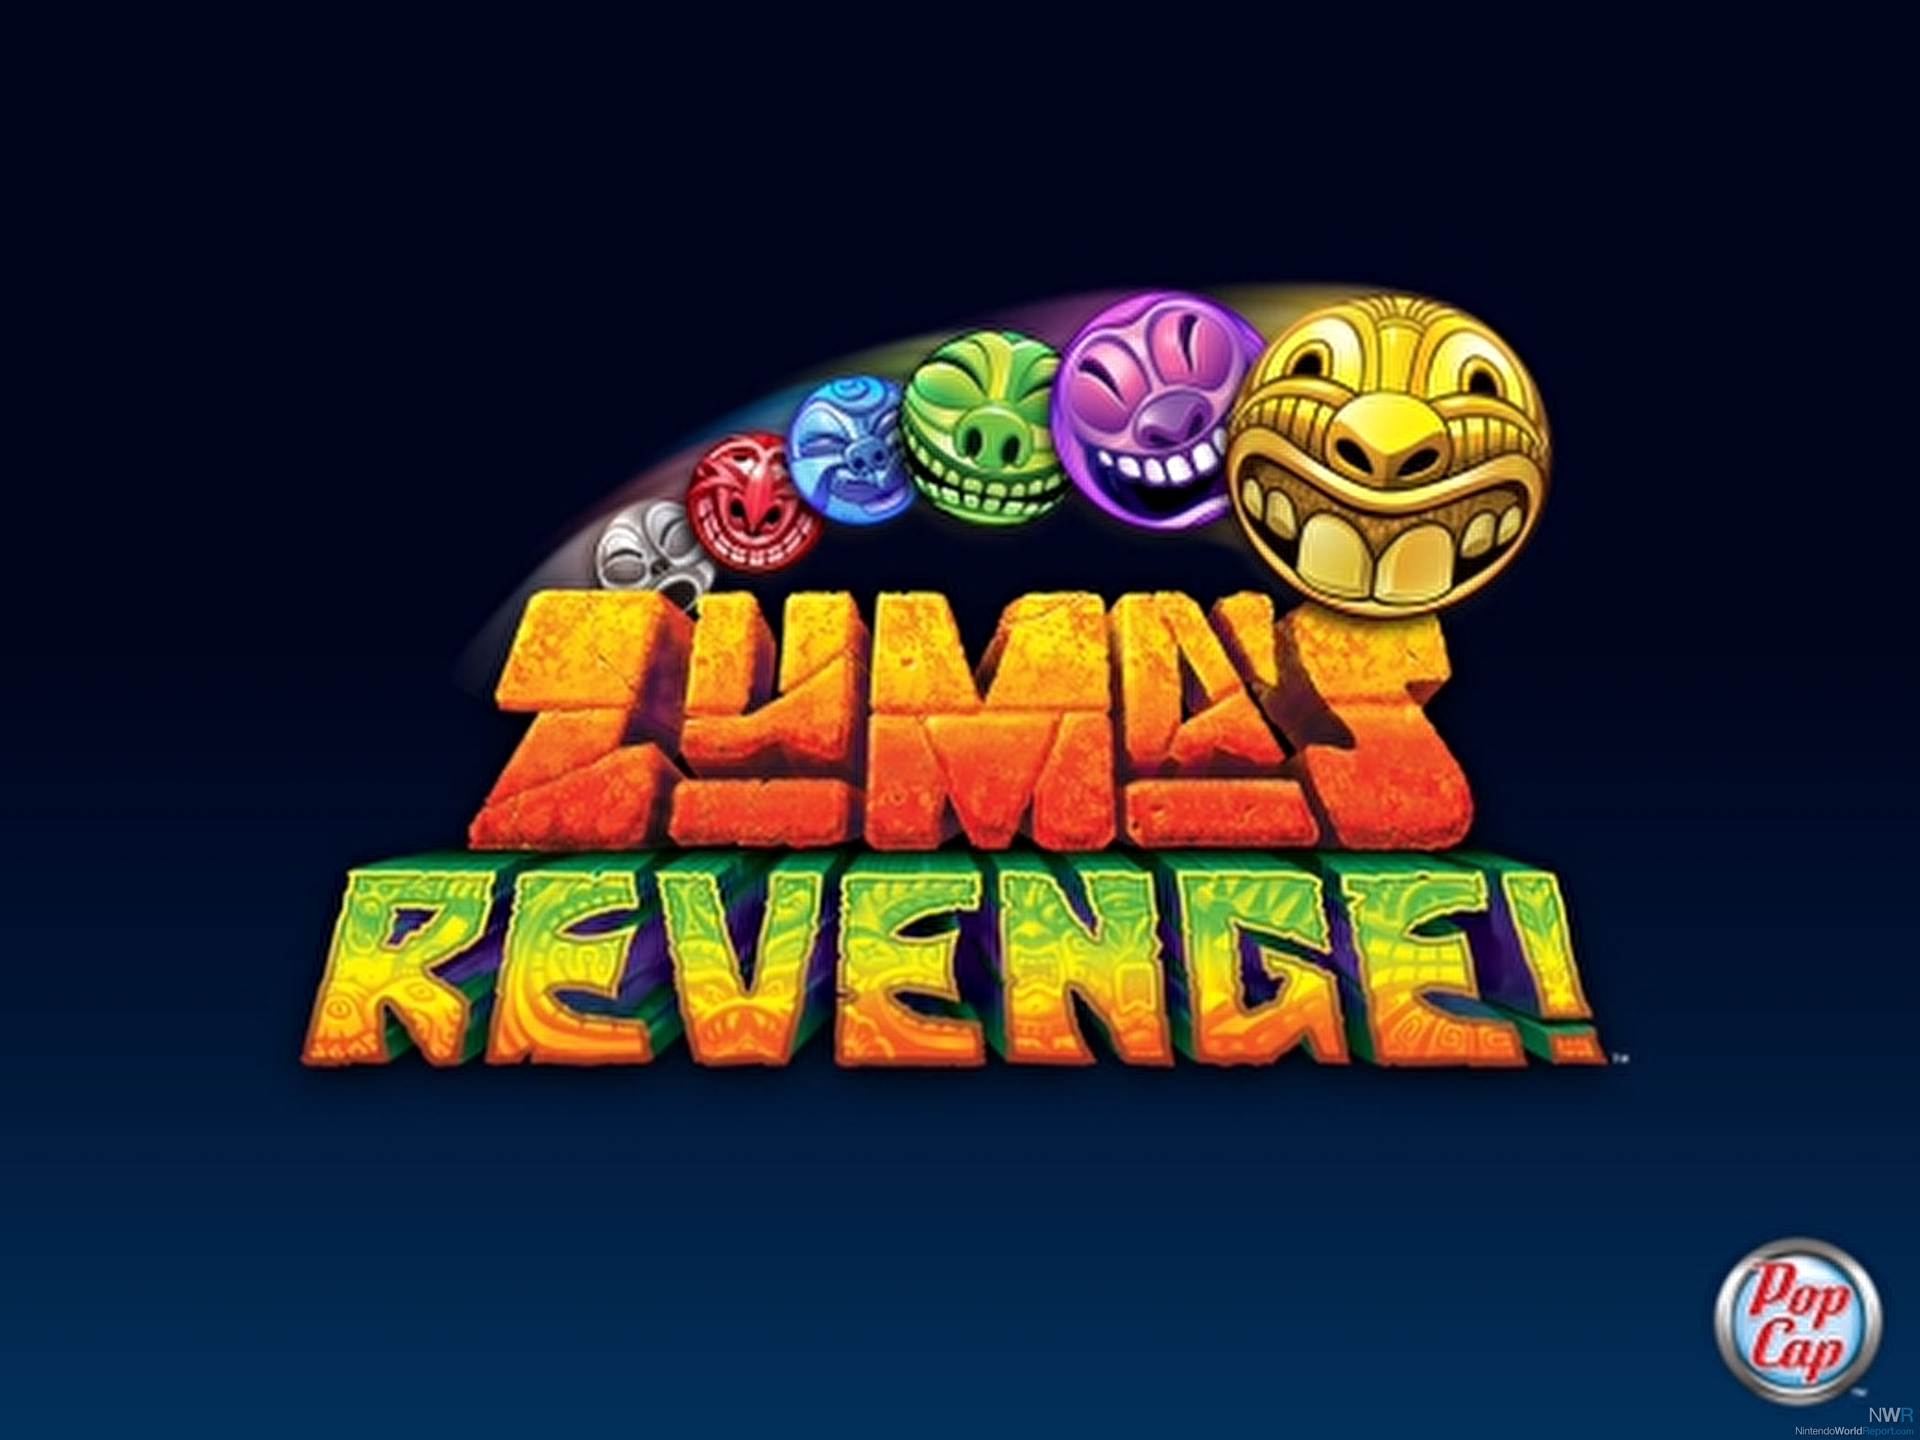 Zuma reviews